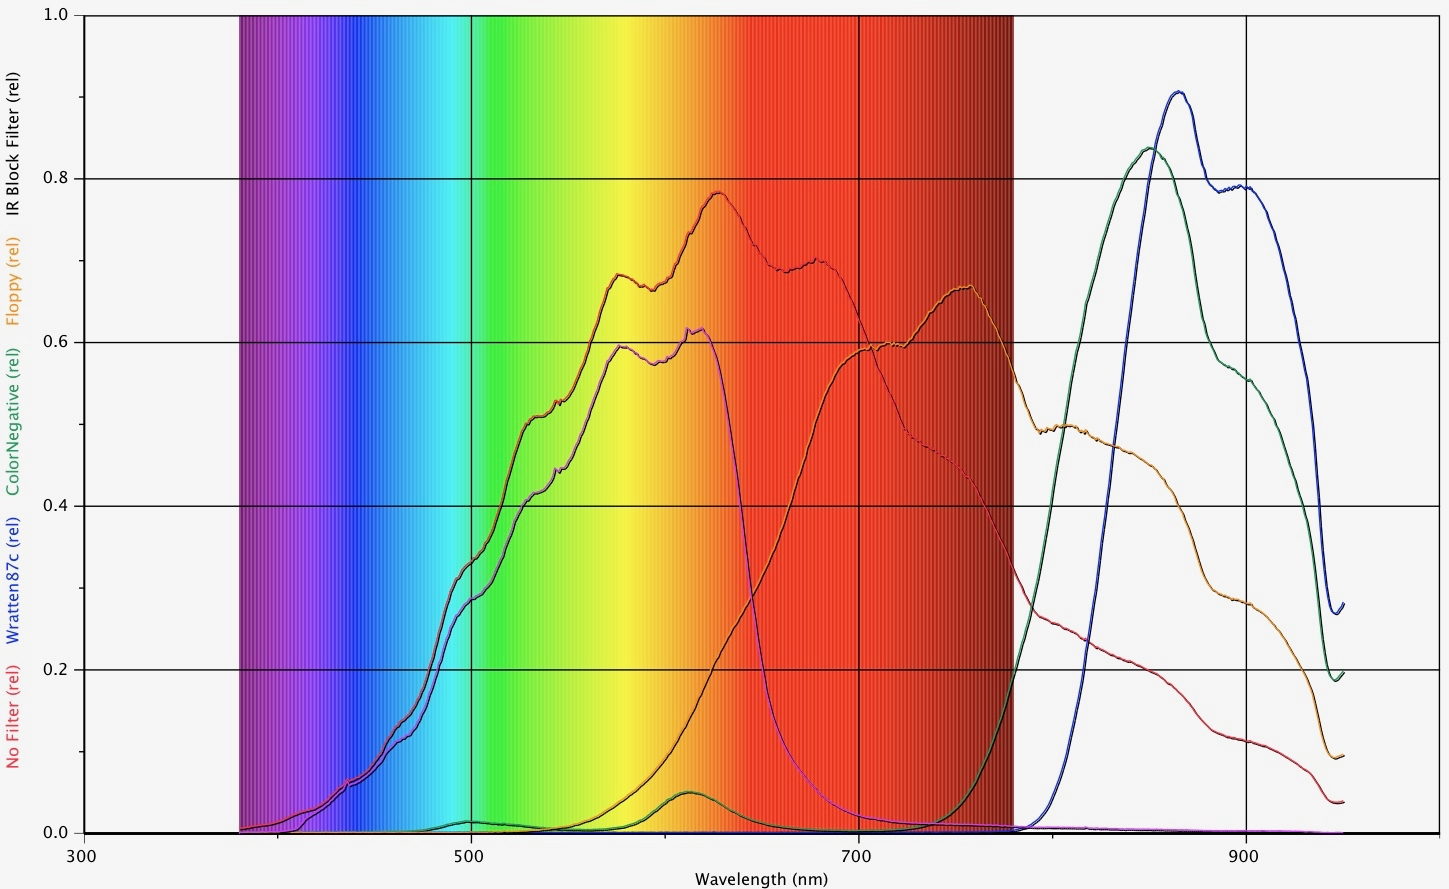 The Blog Of Phyz September 2018 Logitech Quickcam Wiring Diagram Continuous Spectrum Compared To After Pass Through Ir Cut Floppy Color Negative And Wratten 87c Filters